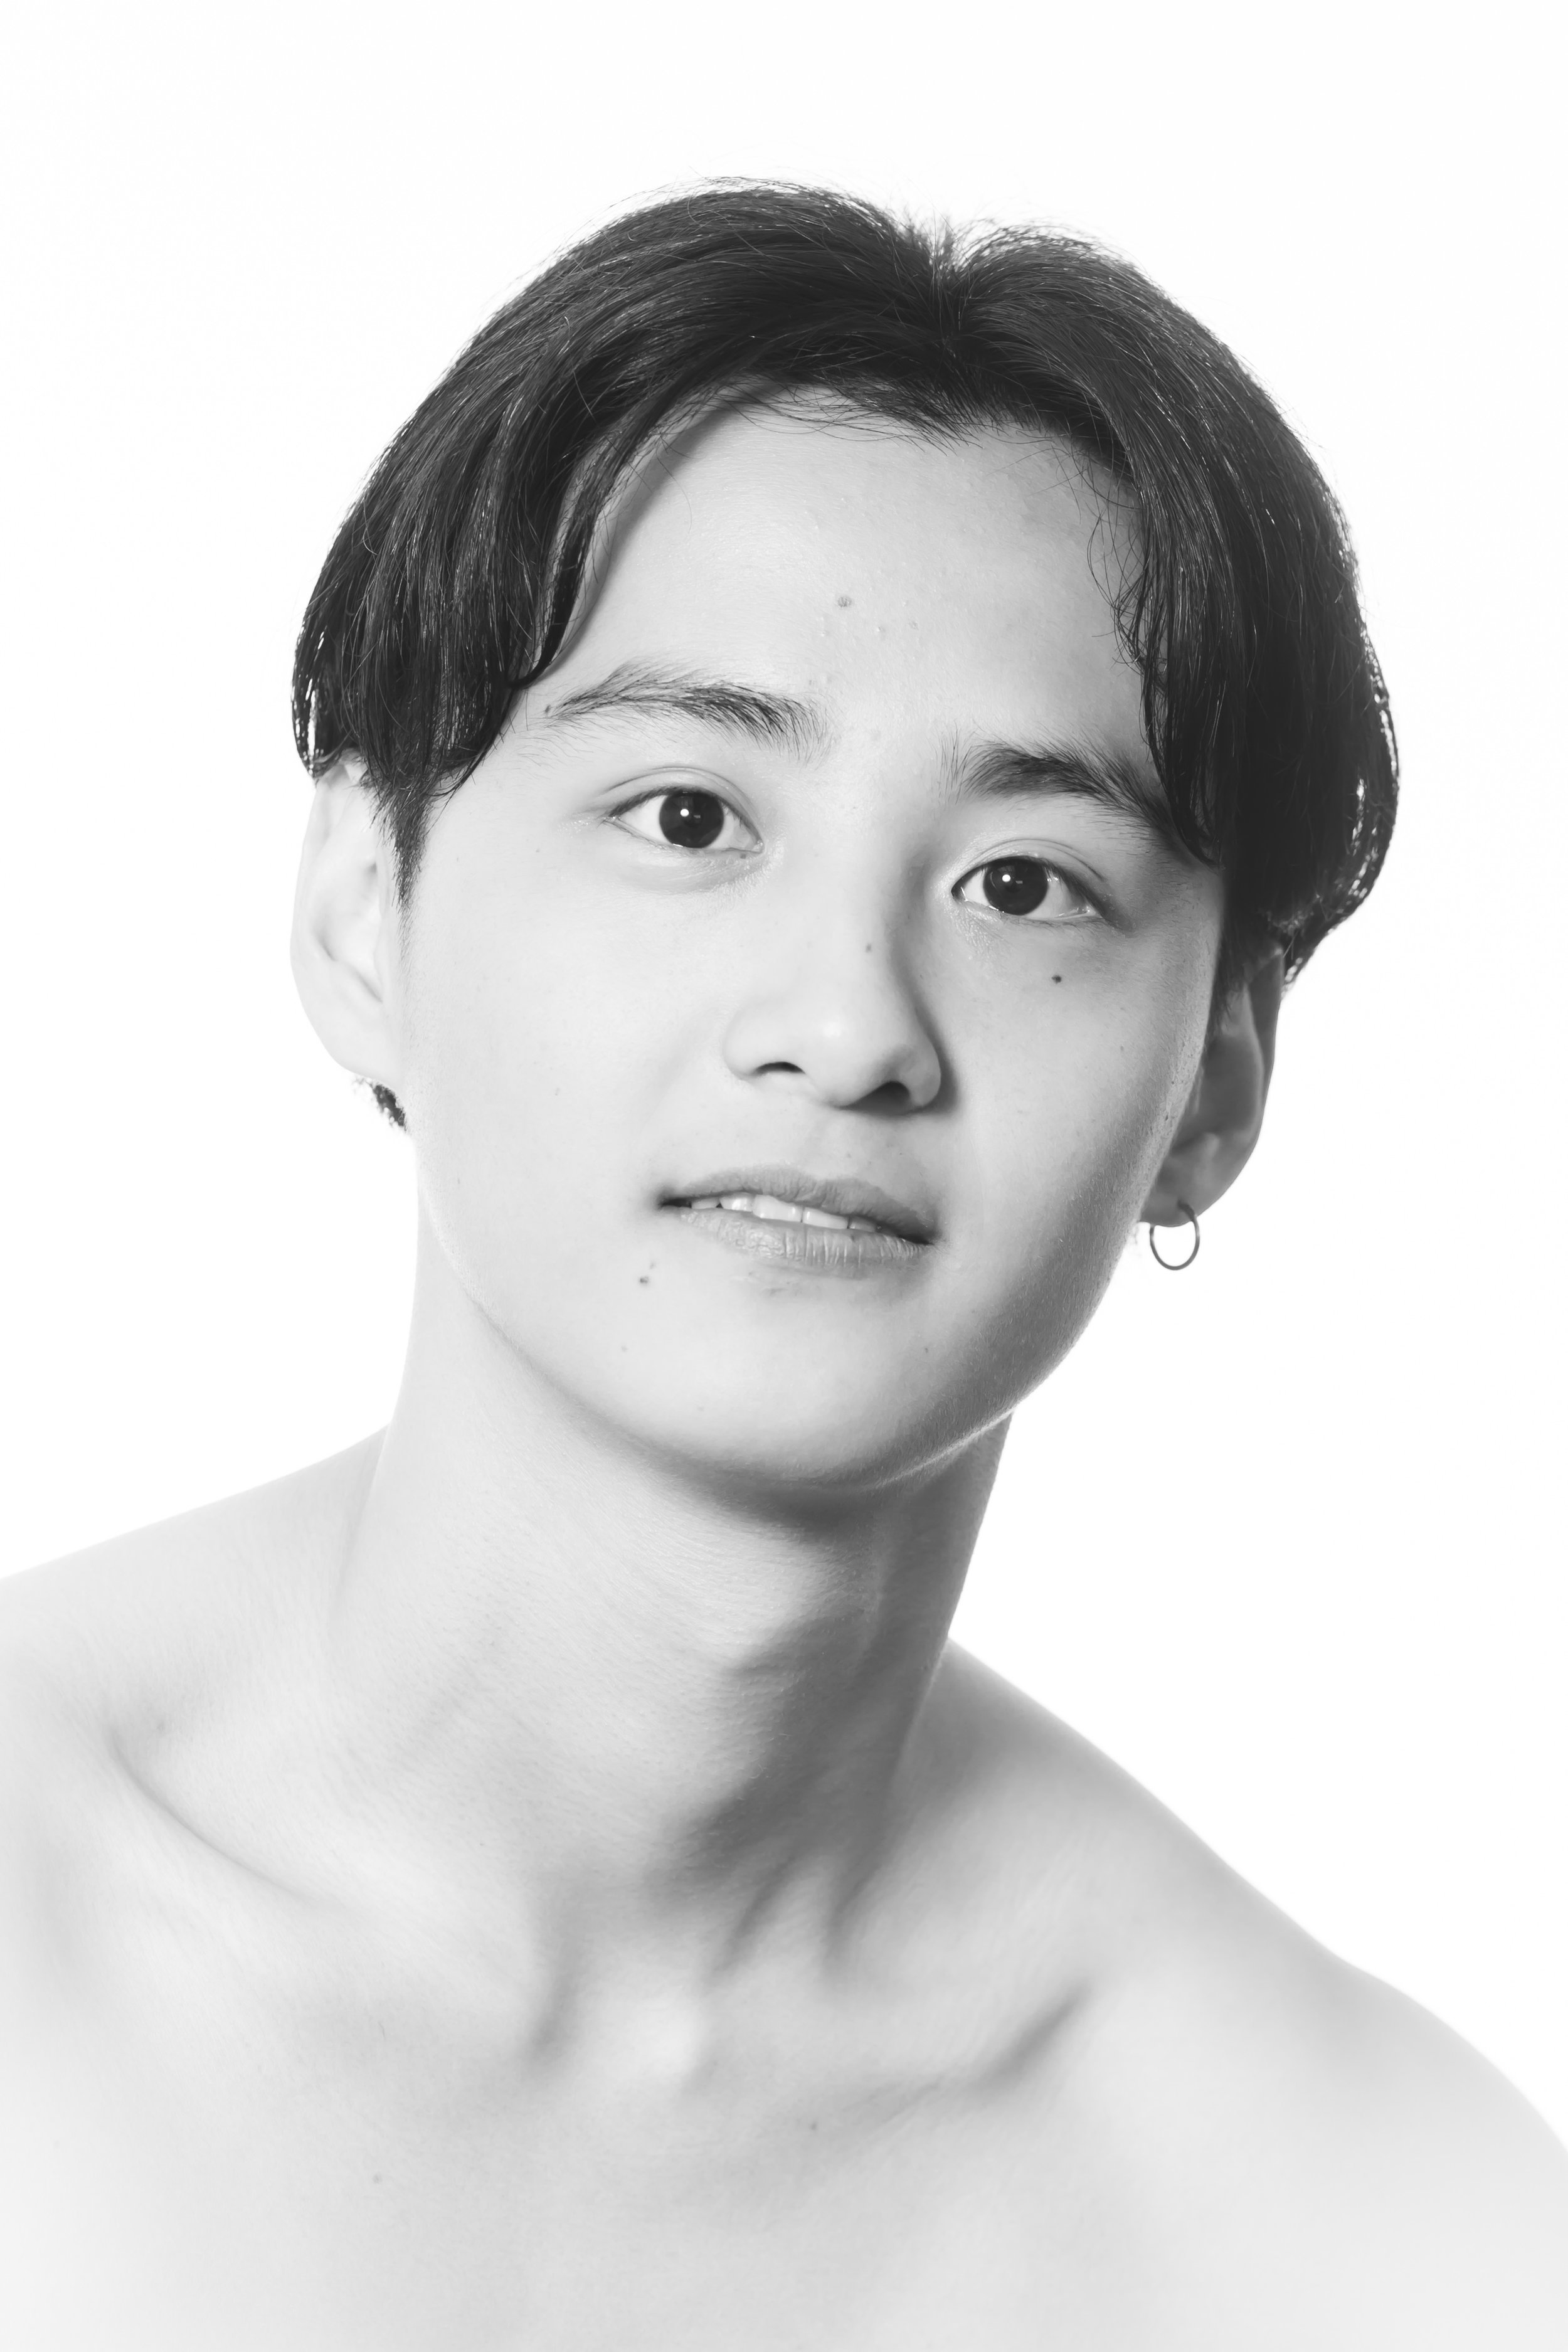 Soji Shinse Junior Artist   Soji grew up in the city of Ikoma, Japan where he trained in dance from a young age. In 2009 Soji competed in the 3rd Ballet competition in Kyoto where he placed 2nd.  In 2013, Soji traveled to the Ukraine to join the Kiev National Ballet School under Serguey Lakhtionov. During his training years, Soji was fortunate to be chosen to appear in the Kiev National Theatre's Japan tours of Sleeping Beauty in 2014 & 2015.  In 2015 Soji competed in the Grand Prix Kiev International Competition where he was awarded the Vadim Pisarev Award.  Following completion of his formal classical training, Soji joined the National Opera Romania Iasi for their 2016-2017 season. Soji then relocated to Melbourne to join Melbourne City Ballet in 2018.